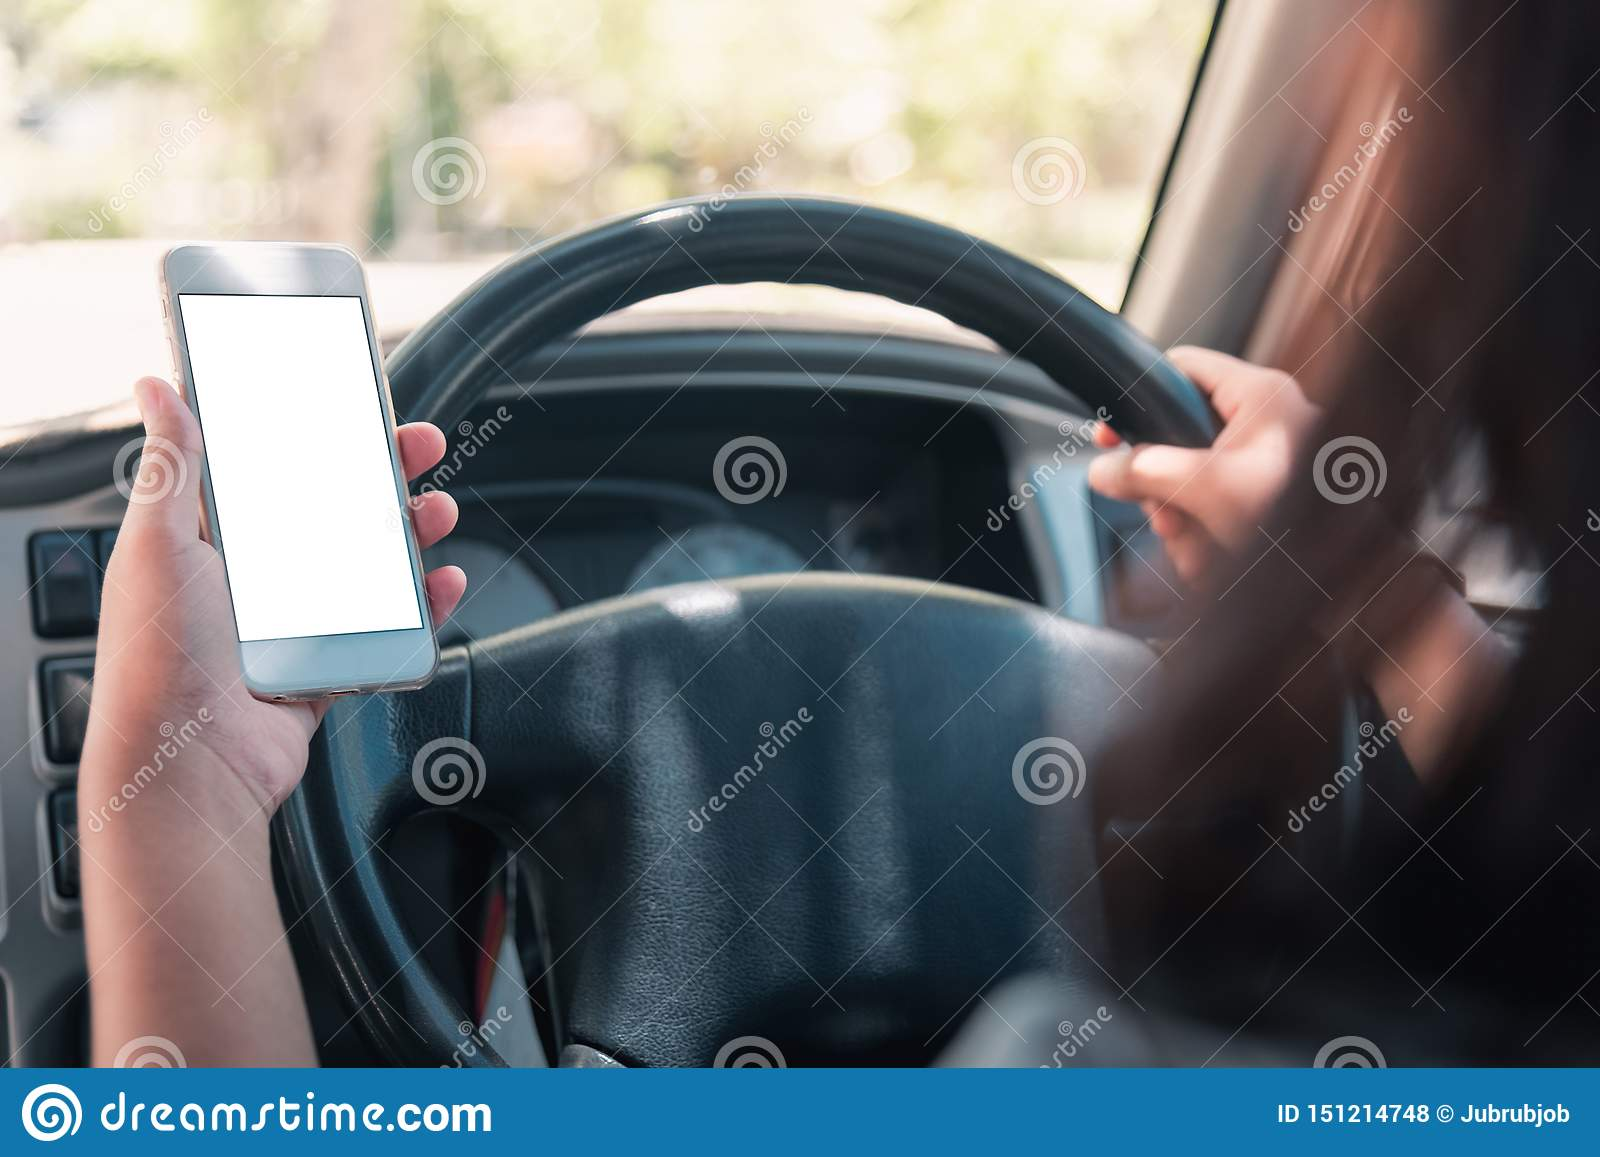 Woman in the car. Young business woman with phone in car. Woman holding smartphone with blank screen